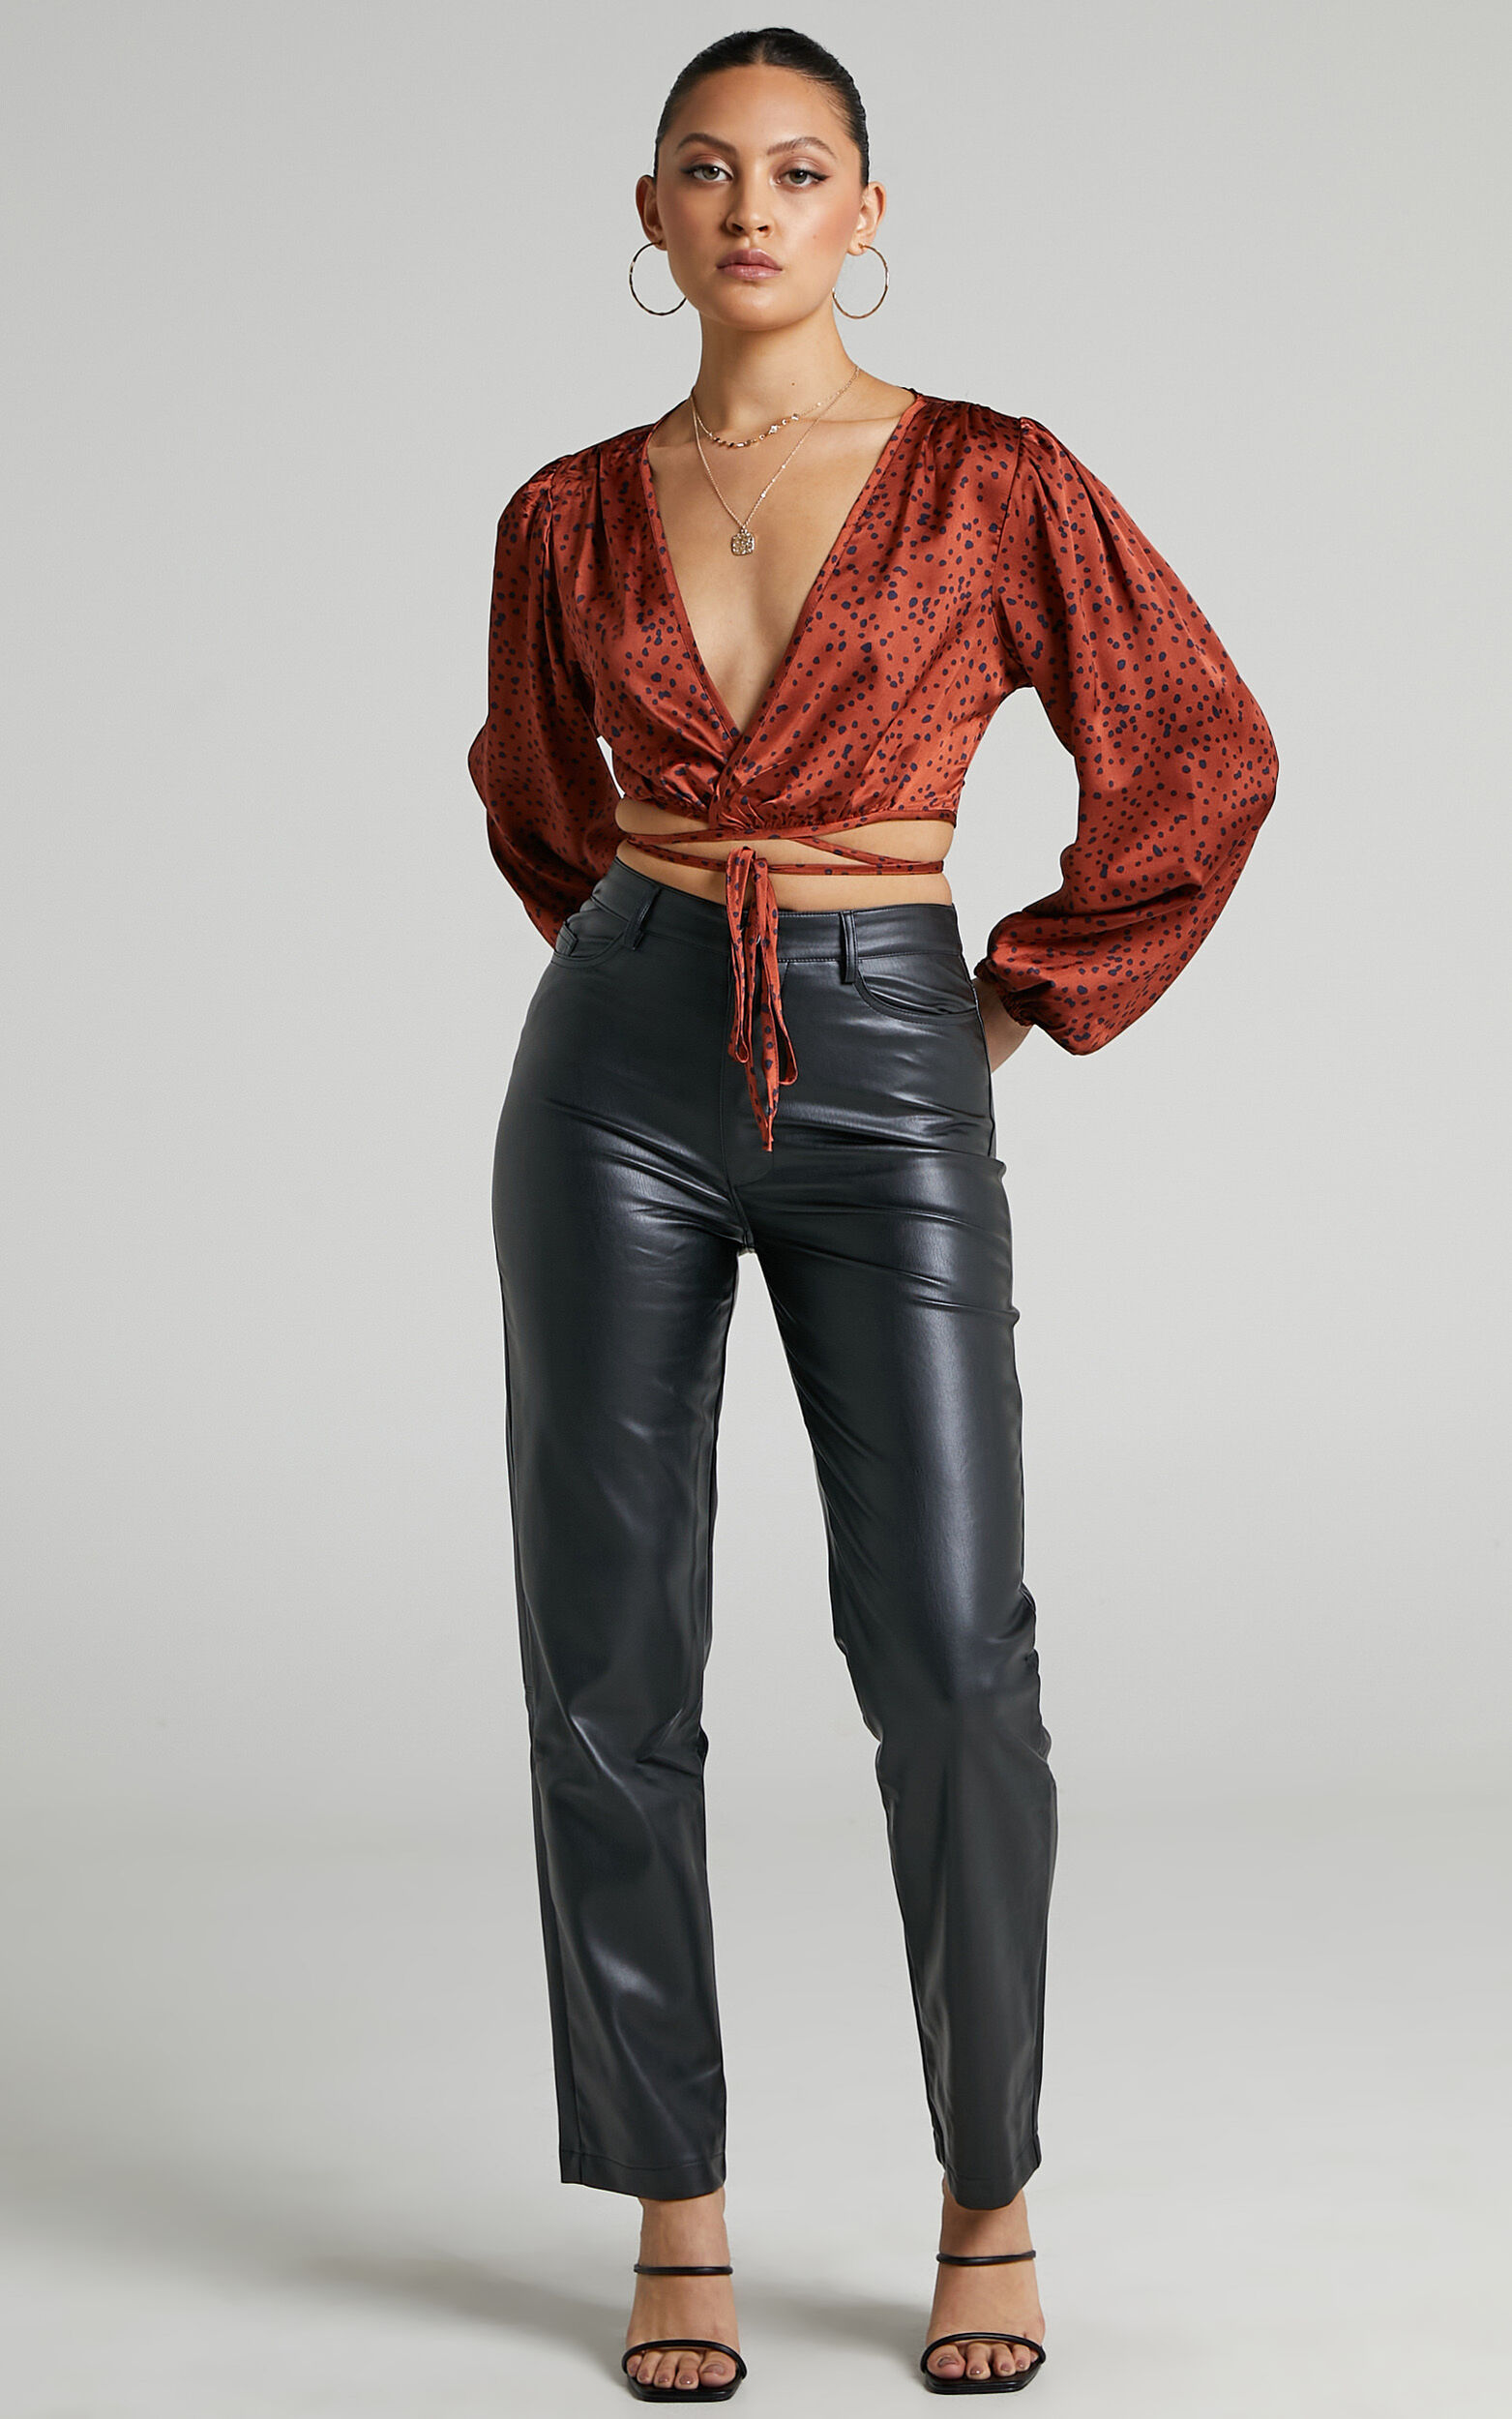 Cressy Long Sleeve Wrap Tie Top in Copper Spot - 06, GLD1, super-hi-res image number null